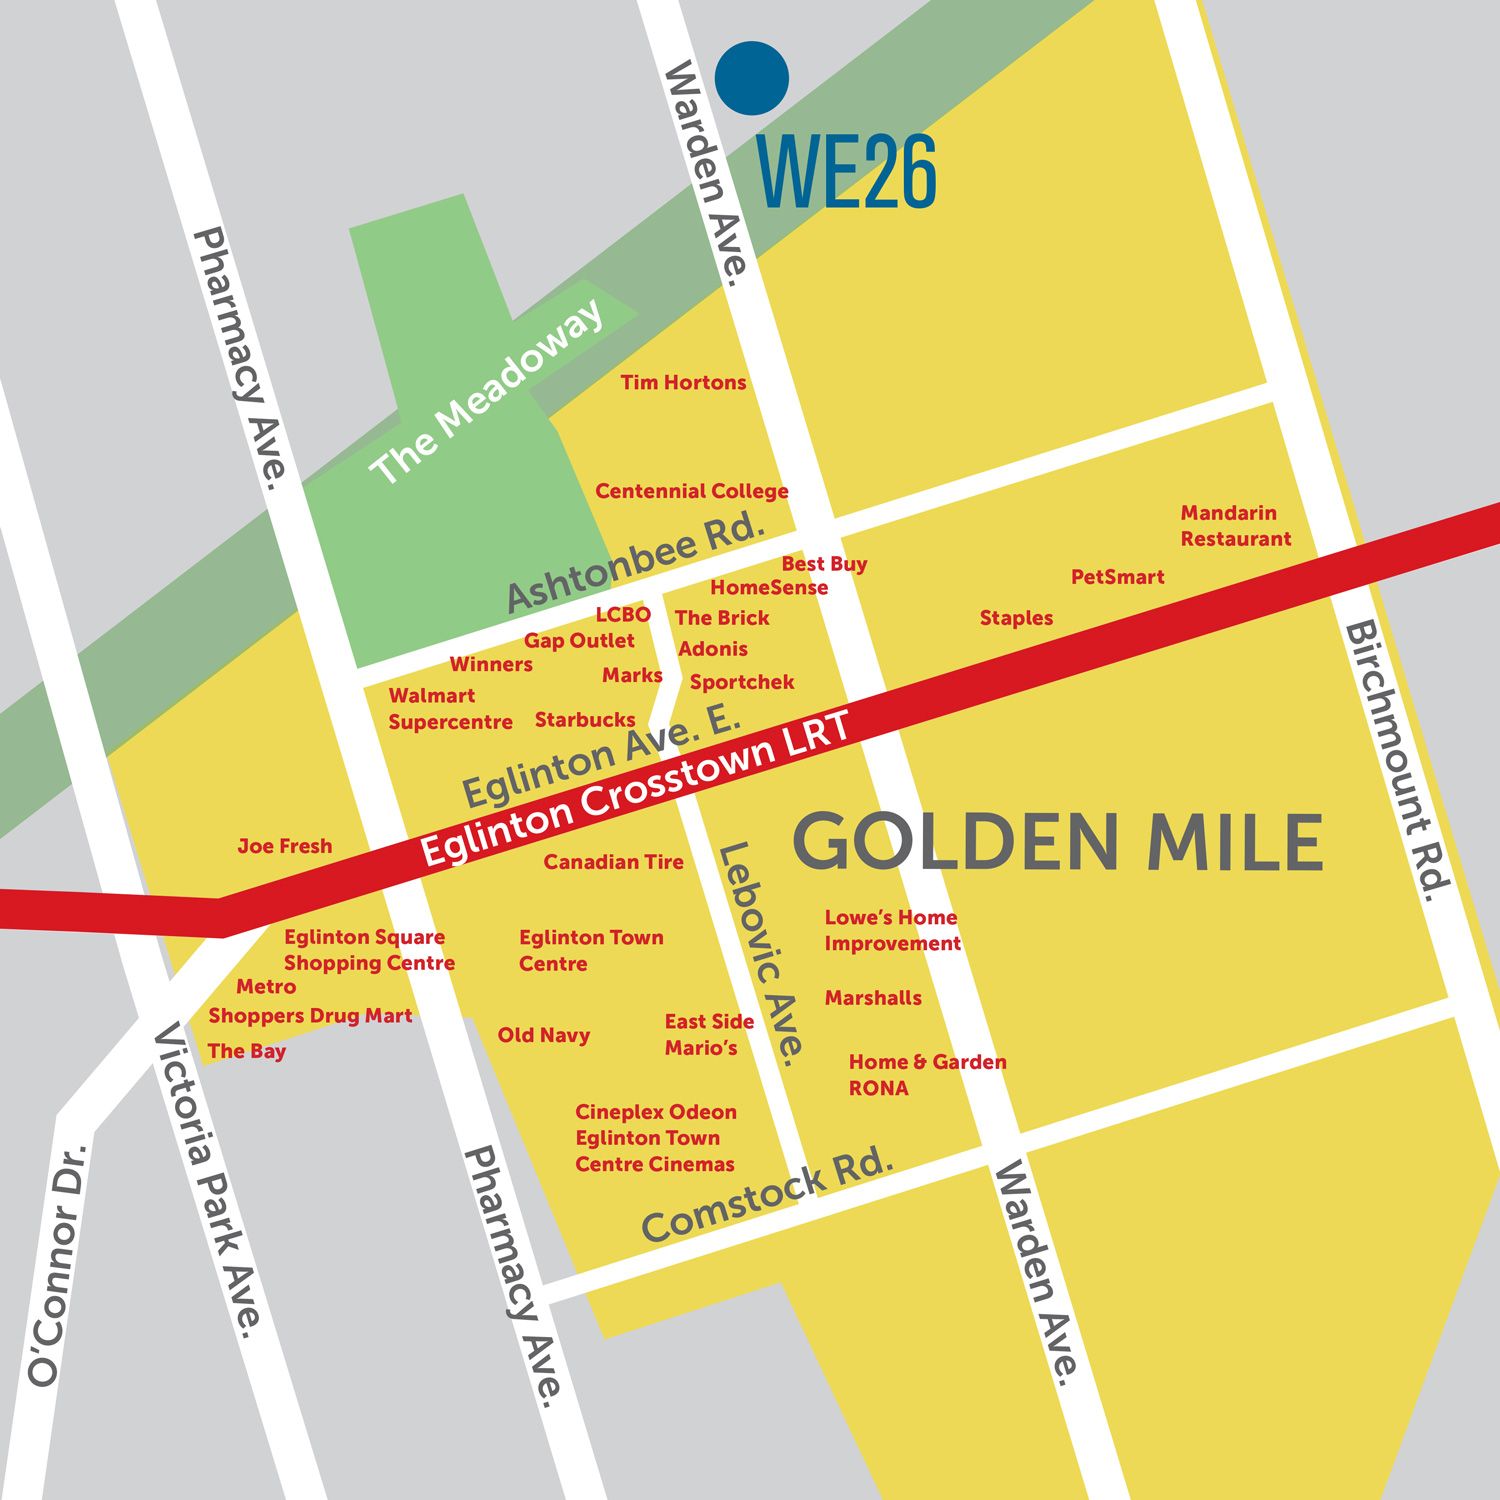 The Golden Mile Map